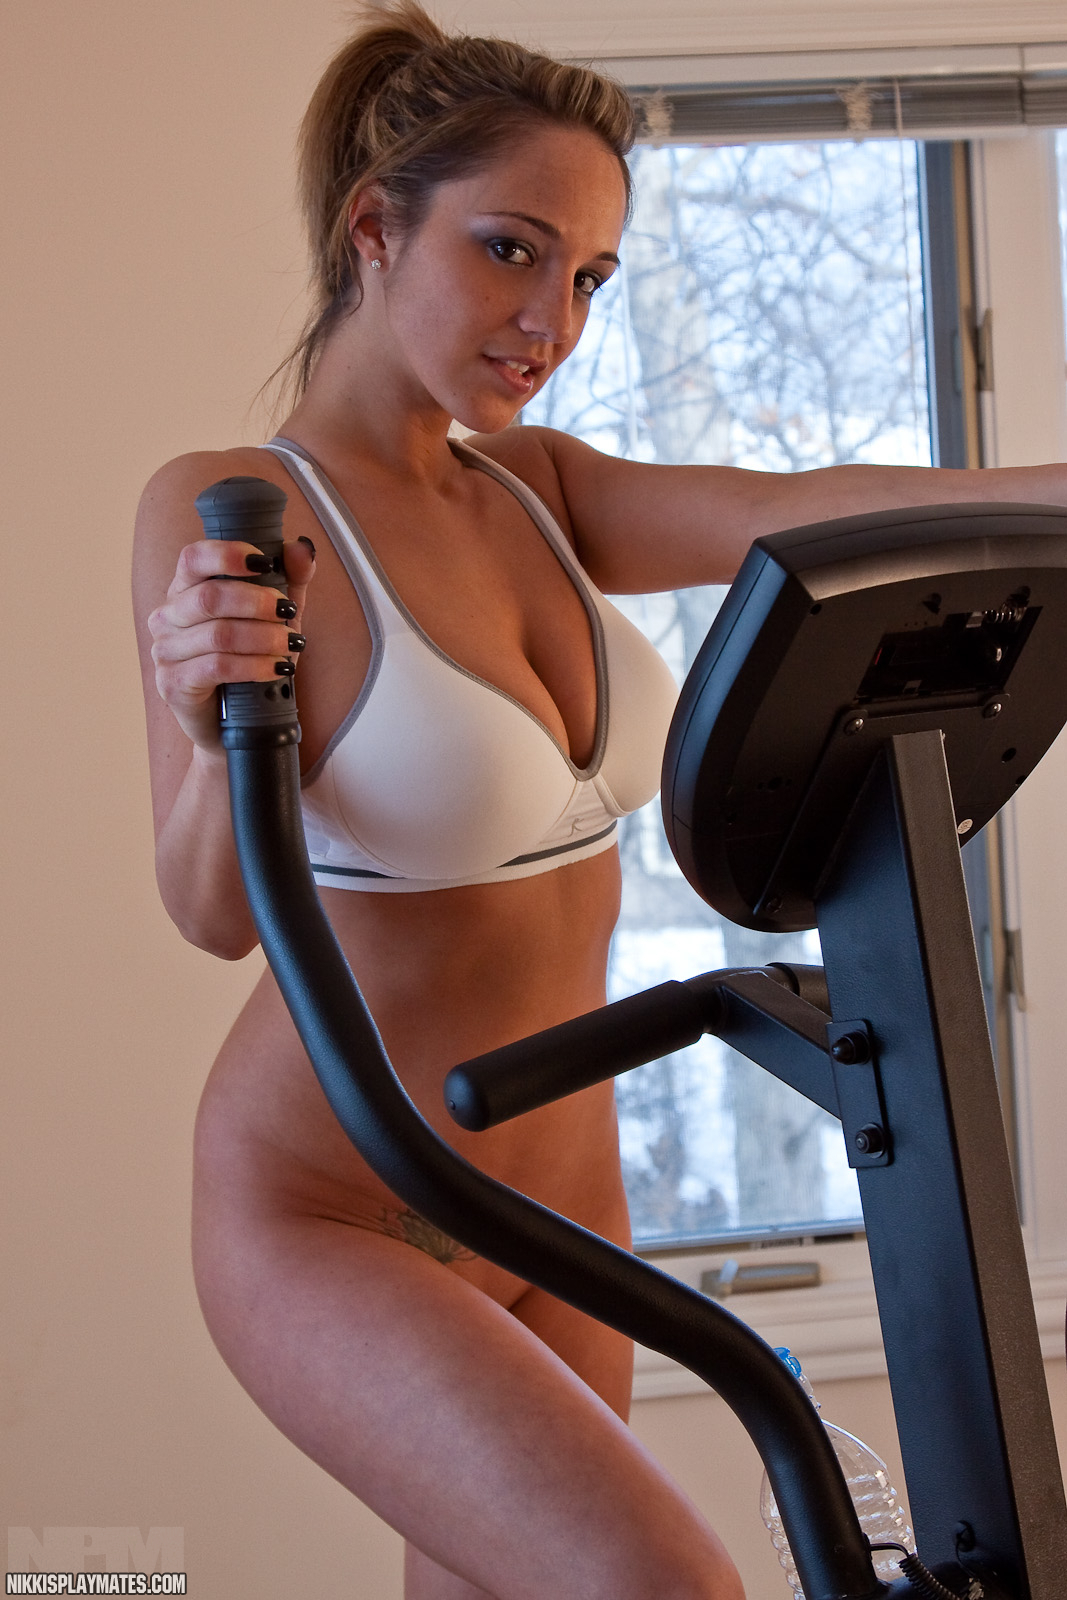 Sexy naked girl working out